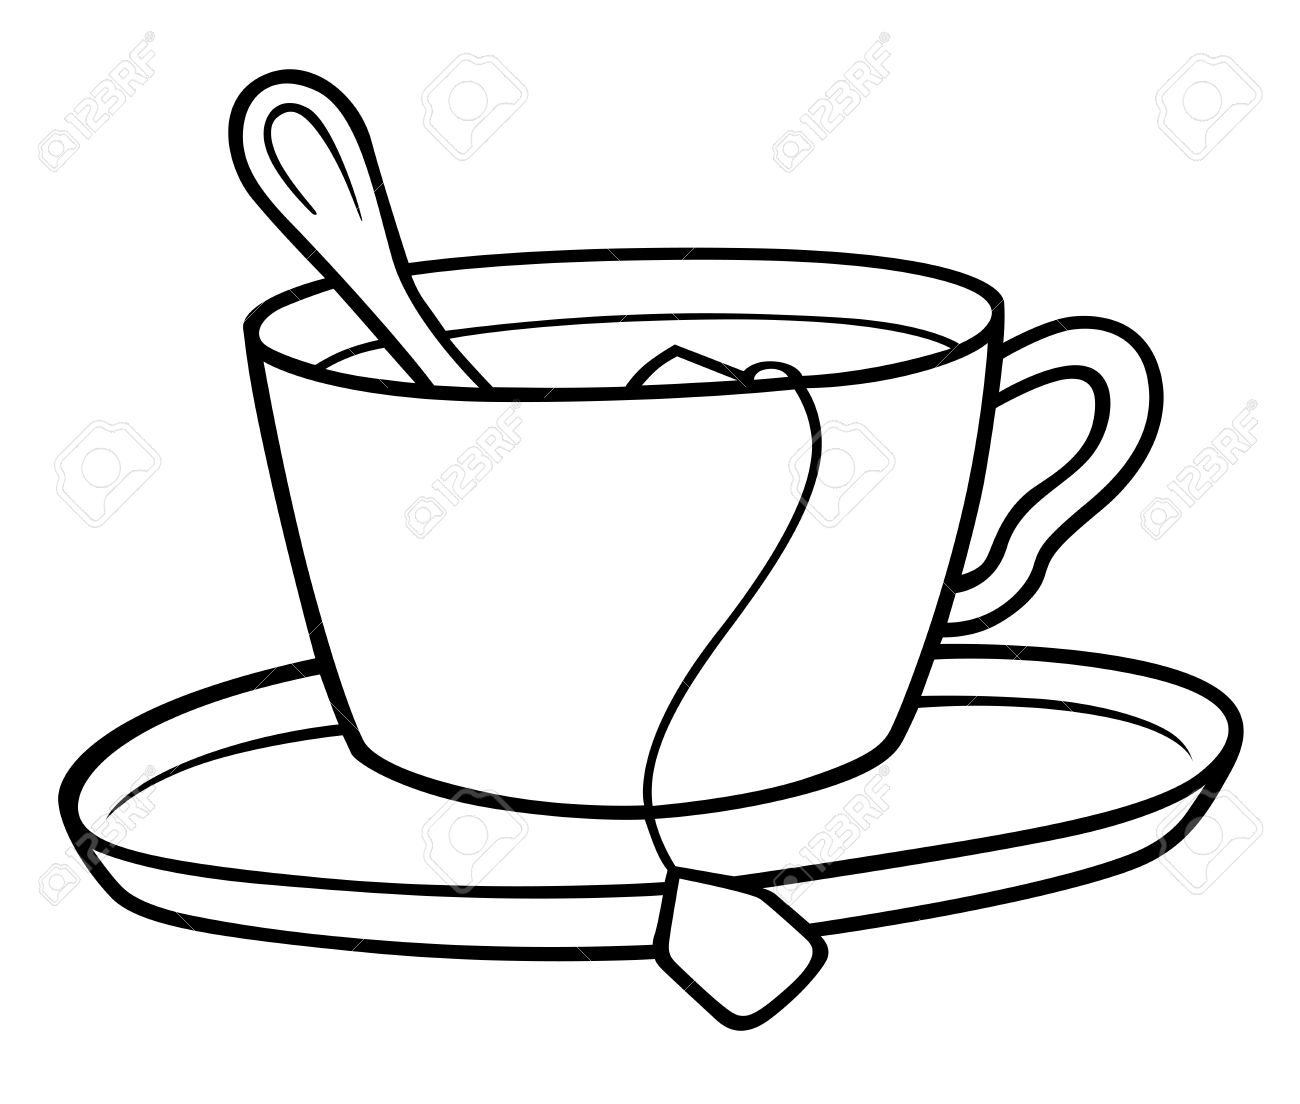 Tea cup clipart black and white 2 » Clipart Station.